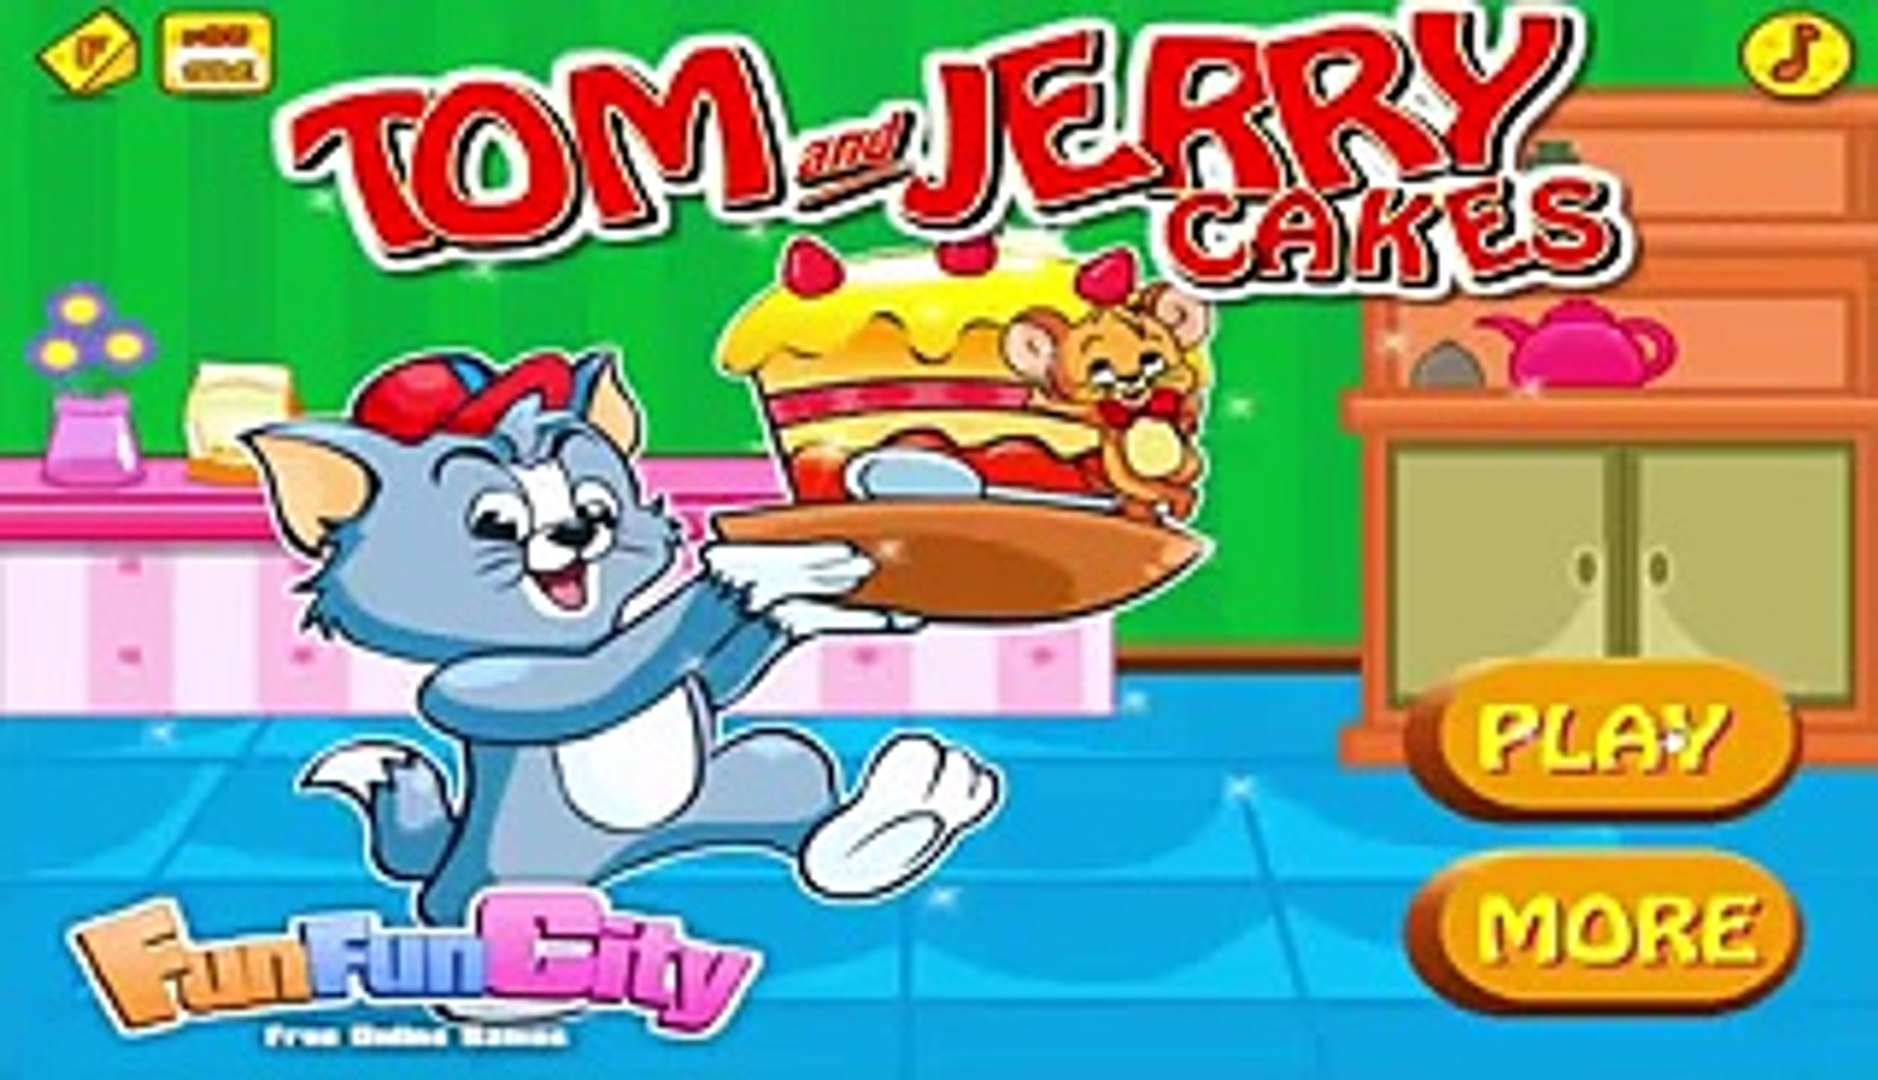 Christmas games | How to play games Tom and Jerry Christmas cupcake | Cook games